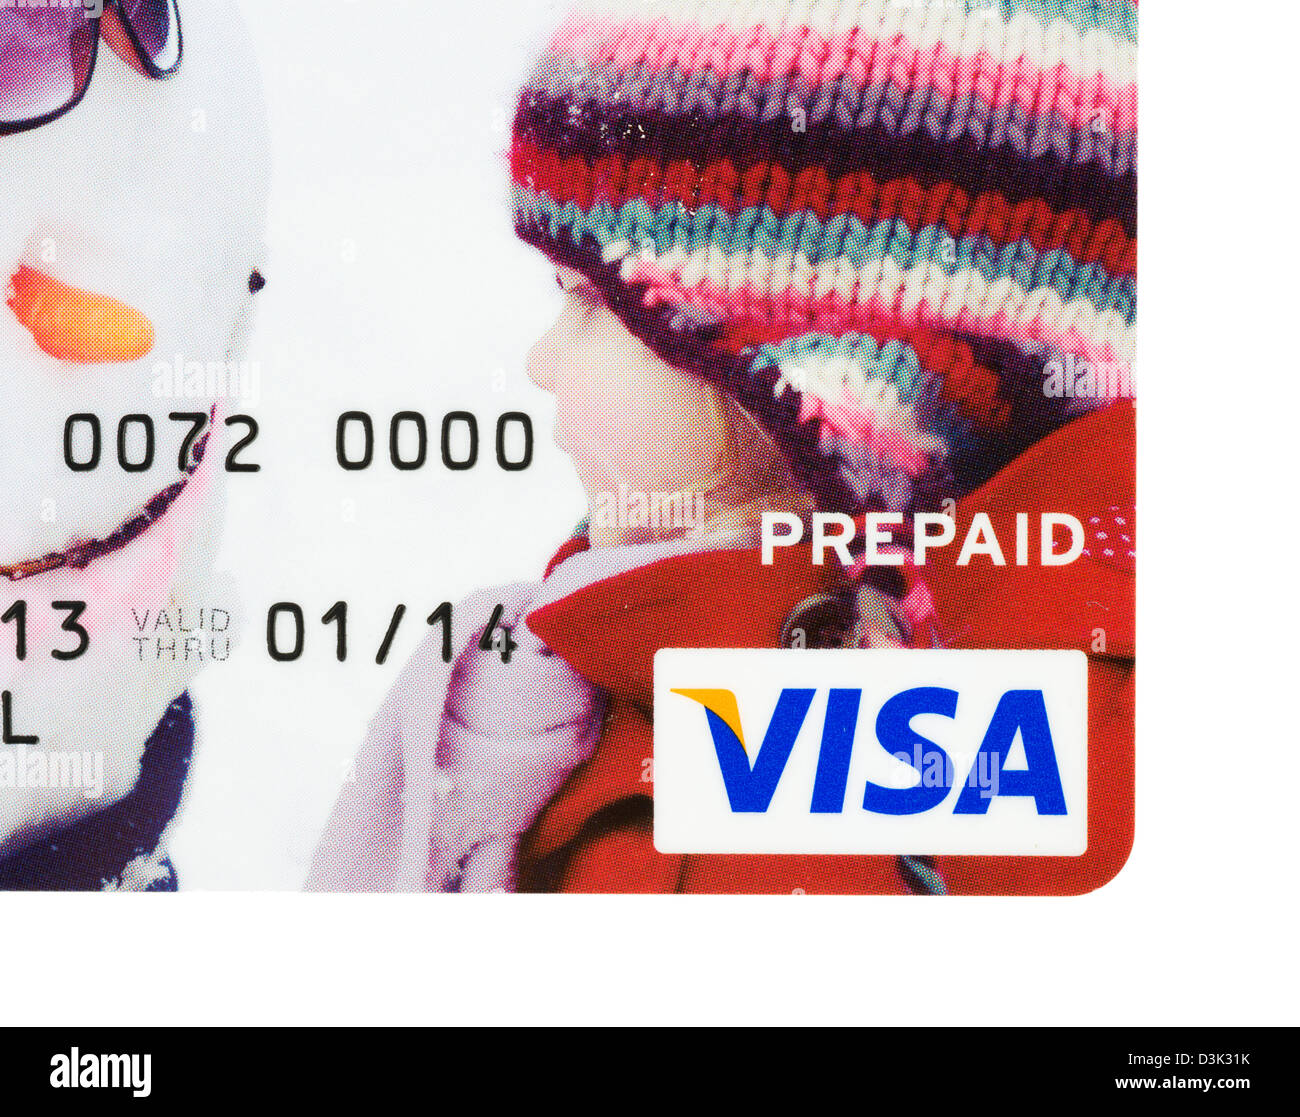 Prepaid VISA card issued in the UK by Citibank - Stock Image